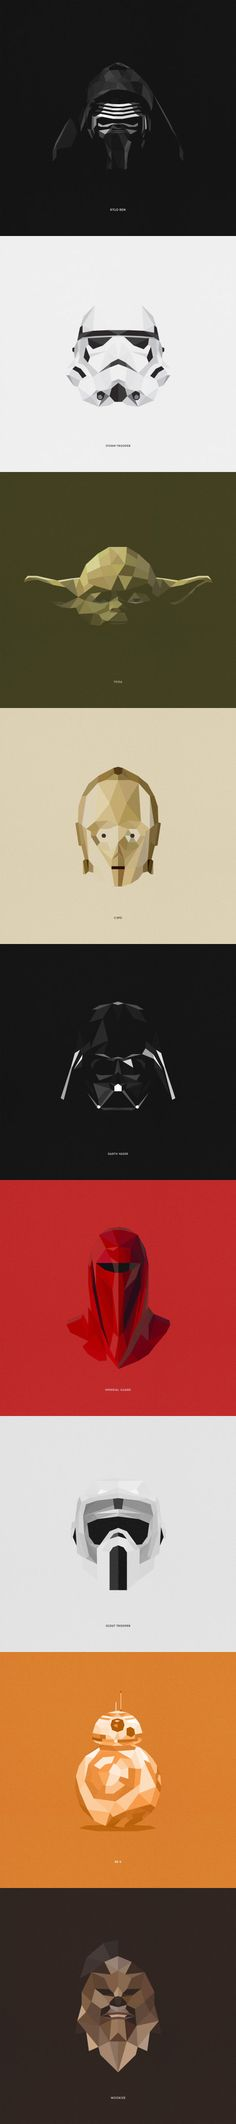 9 Awesome Star Wars Characters Illustrations By Tim Lautensack